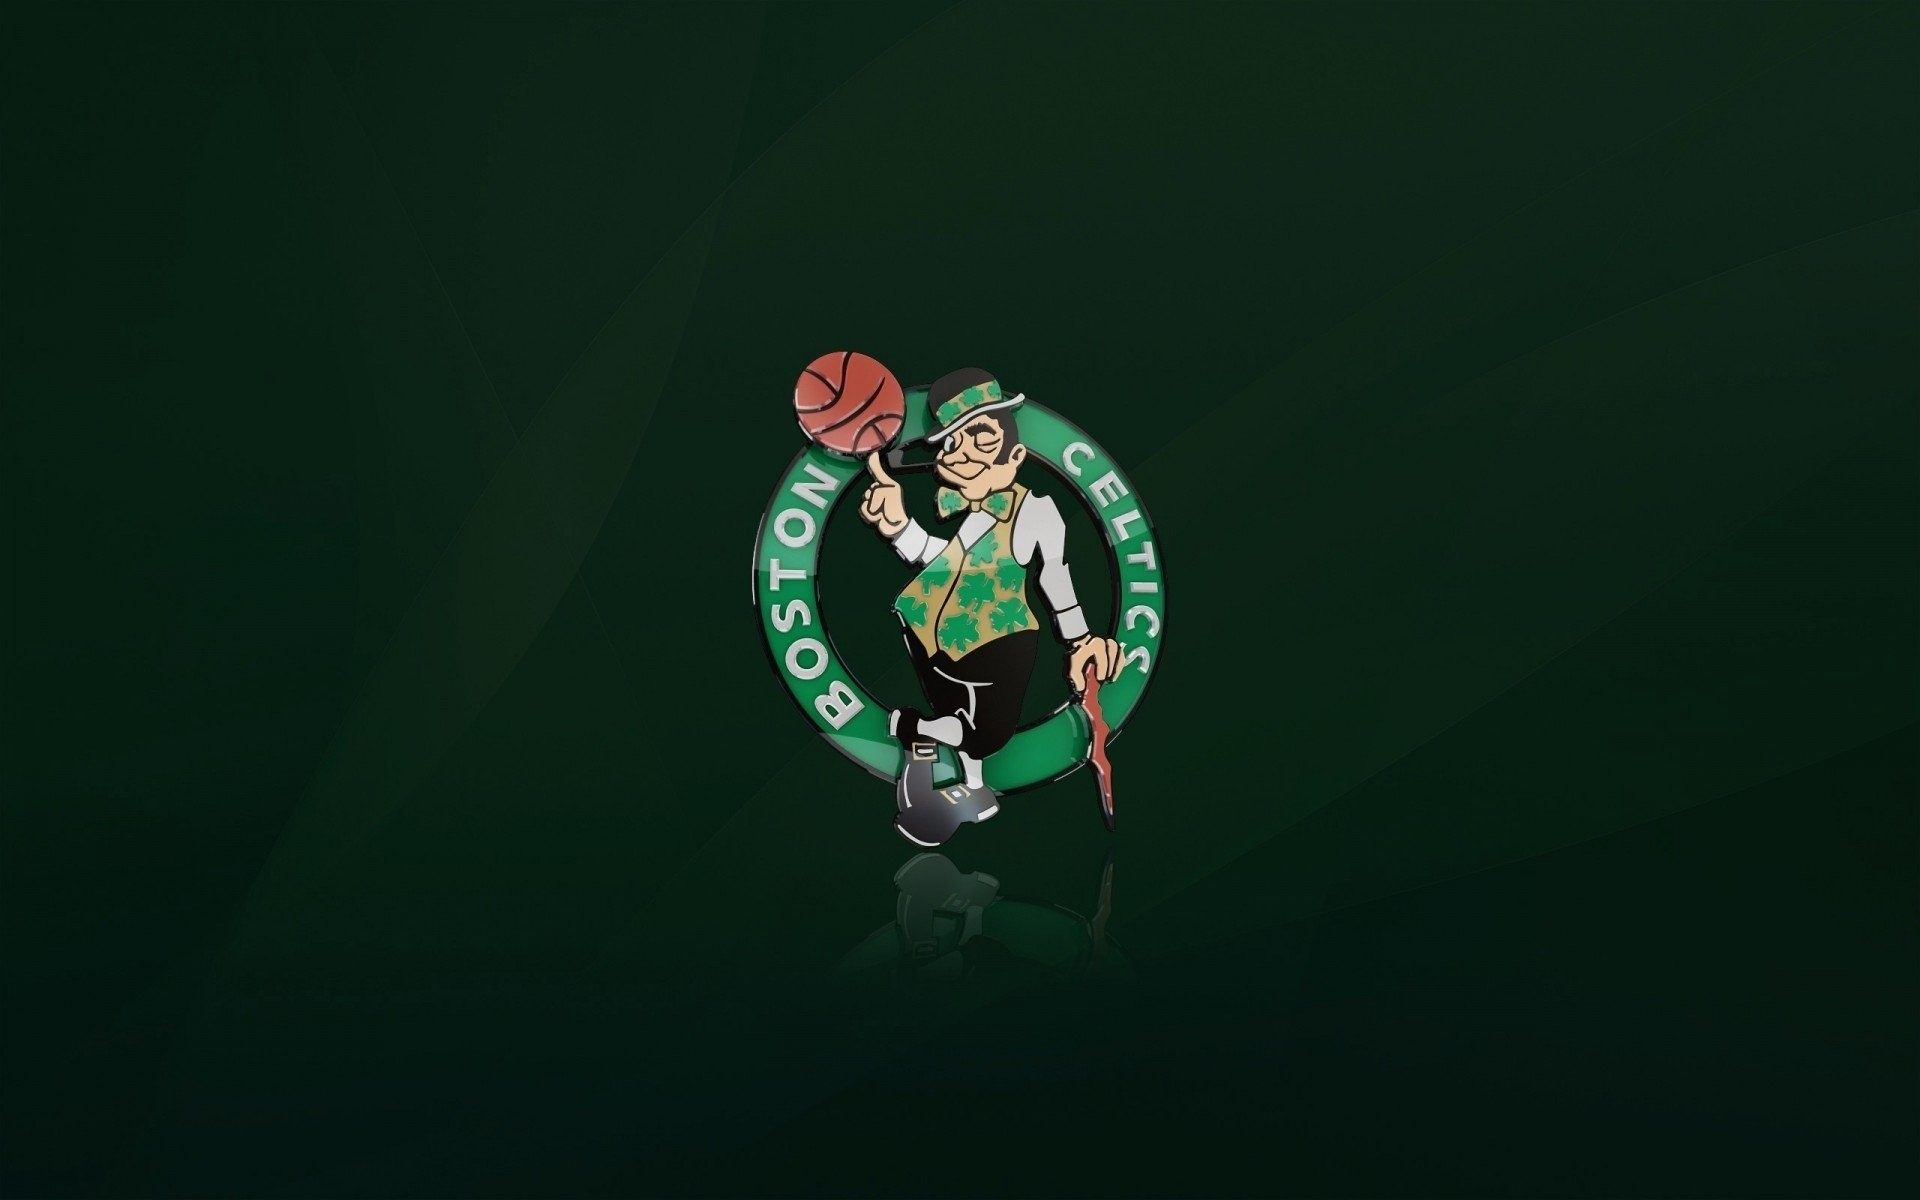 1920x1200 emblem background boston ma basketball nba boston celtics green